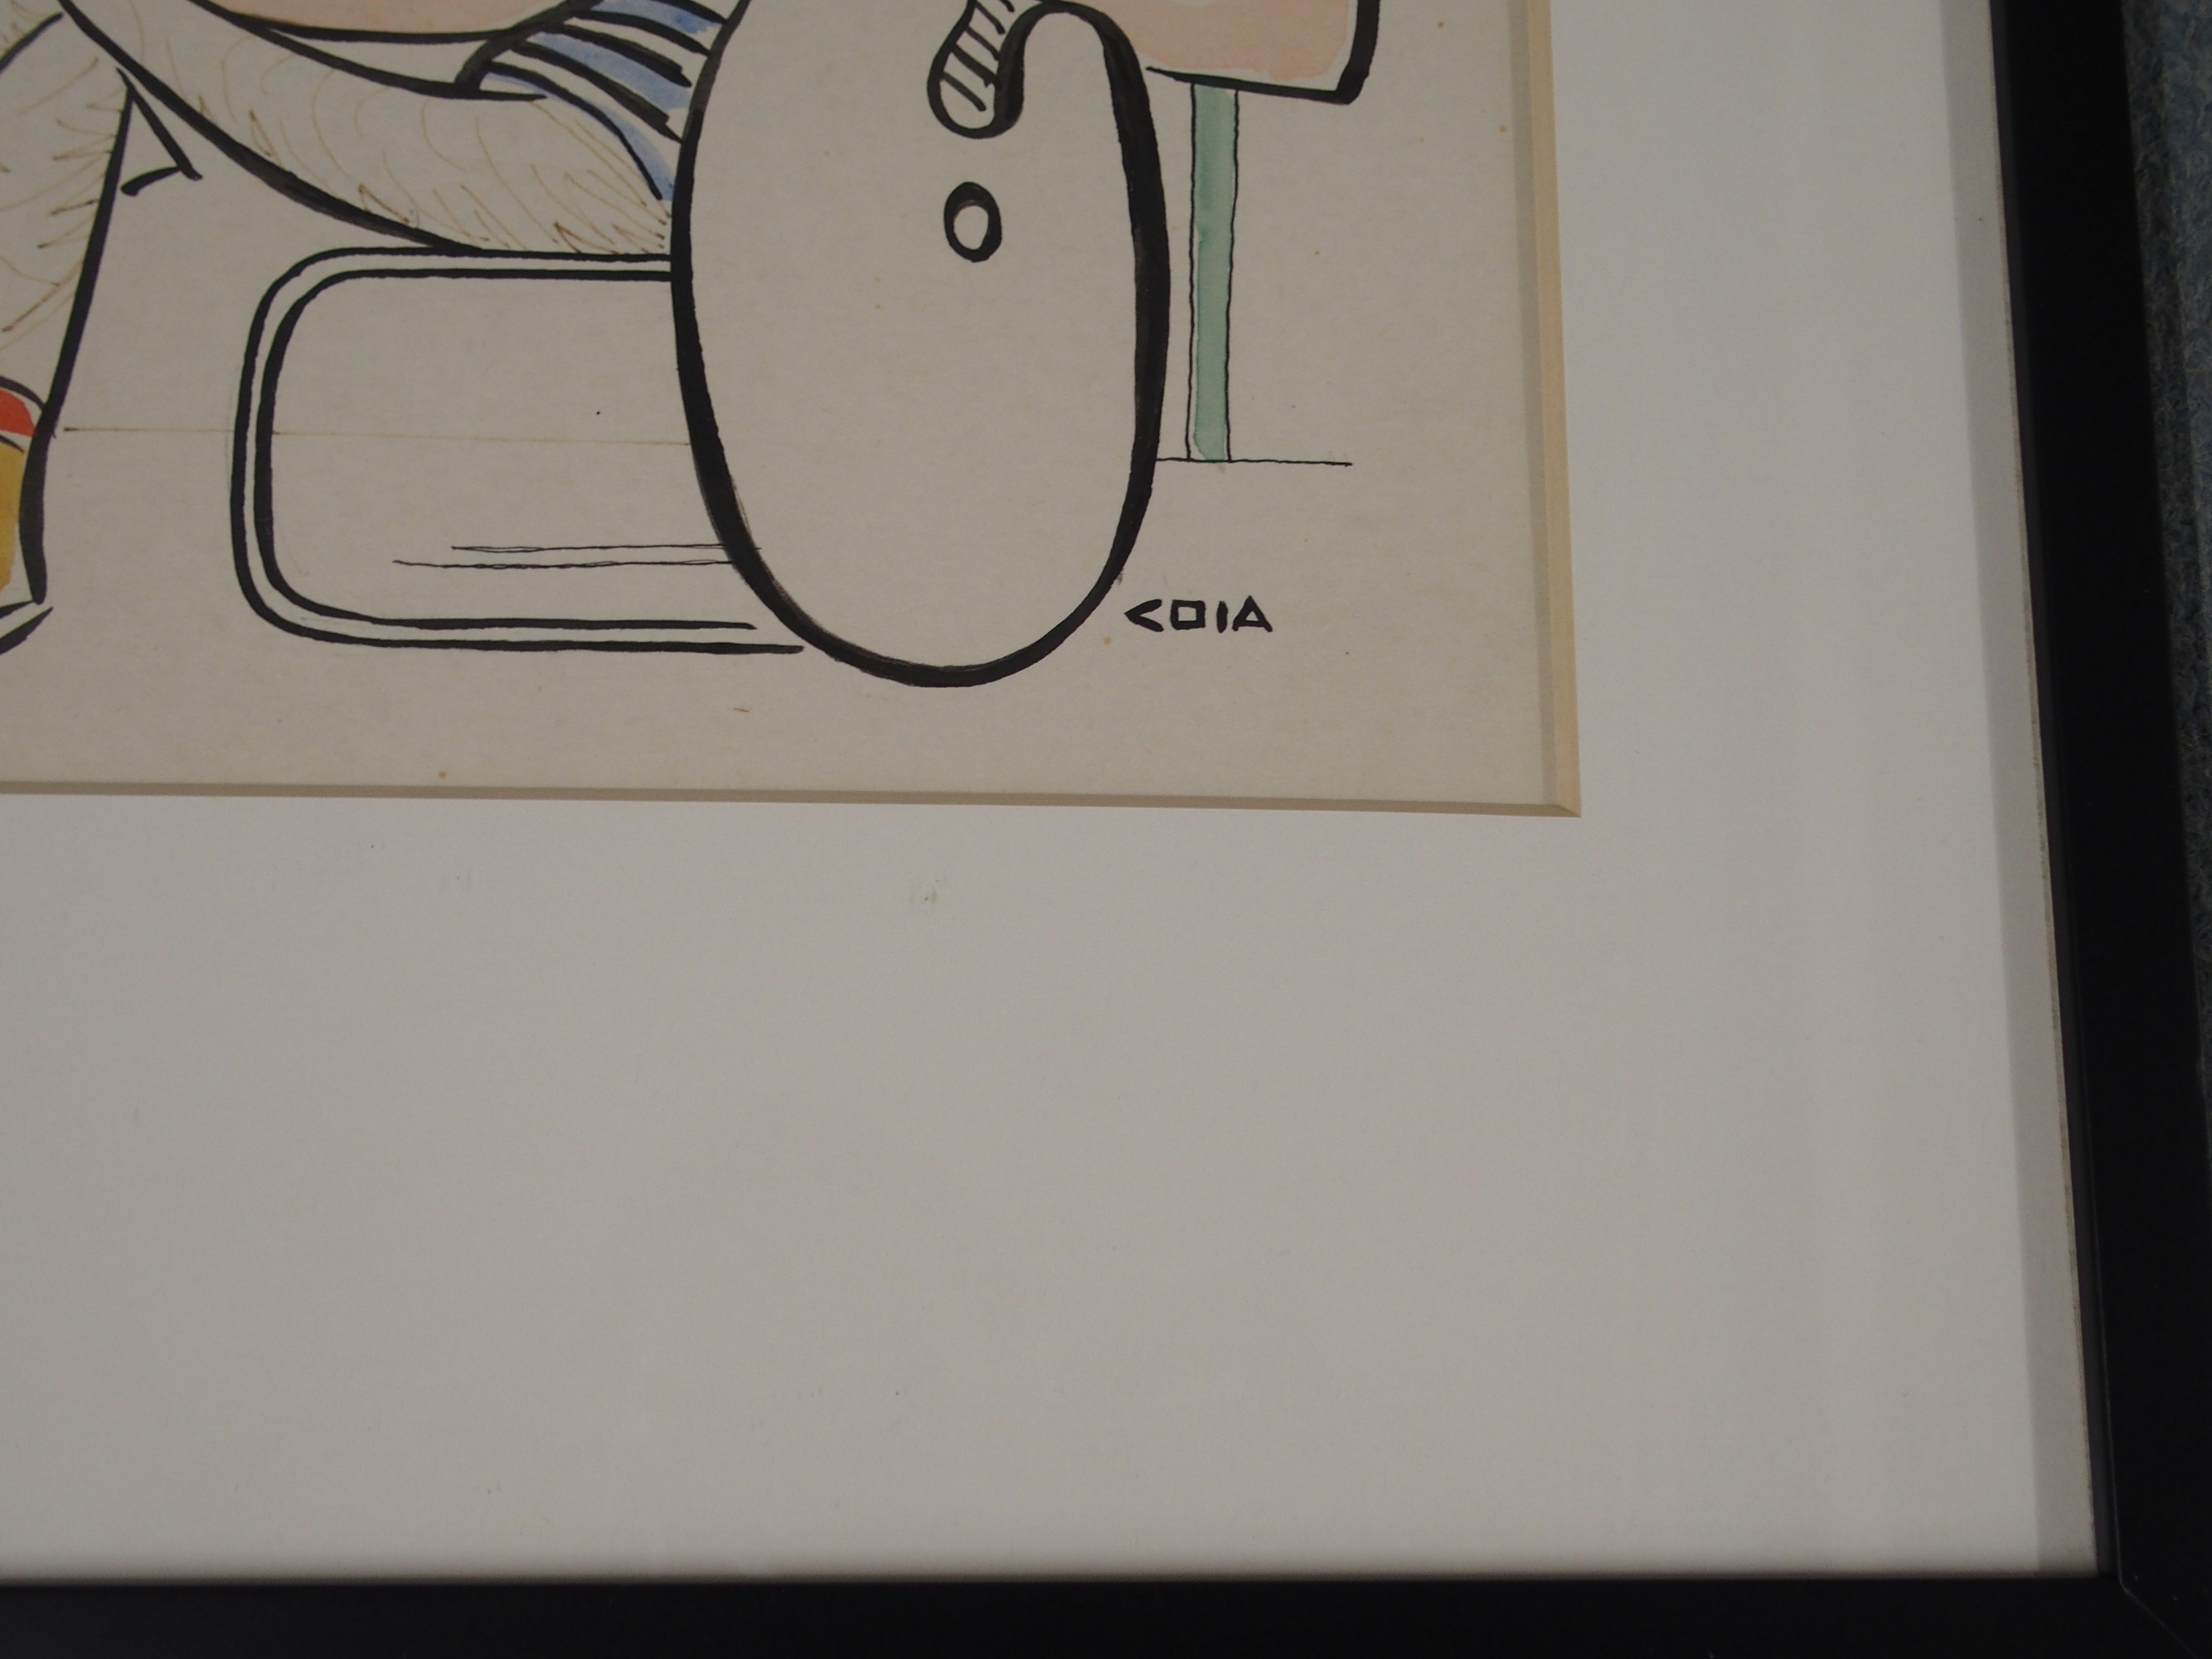 •EMILIO COIA FRSE, LLD (SCOTTISH 1911-1997) PORTRAIT OF DAVID HOCKNEY ink and watercolour, signed, - Image 3 of 5